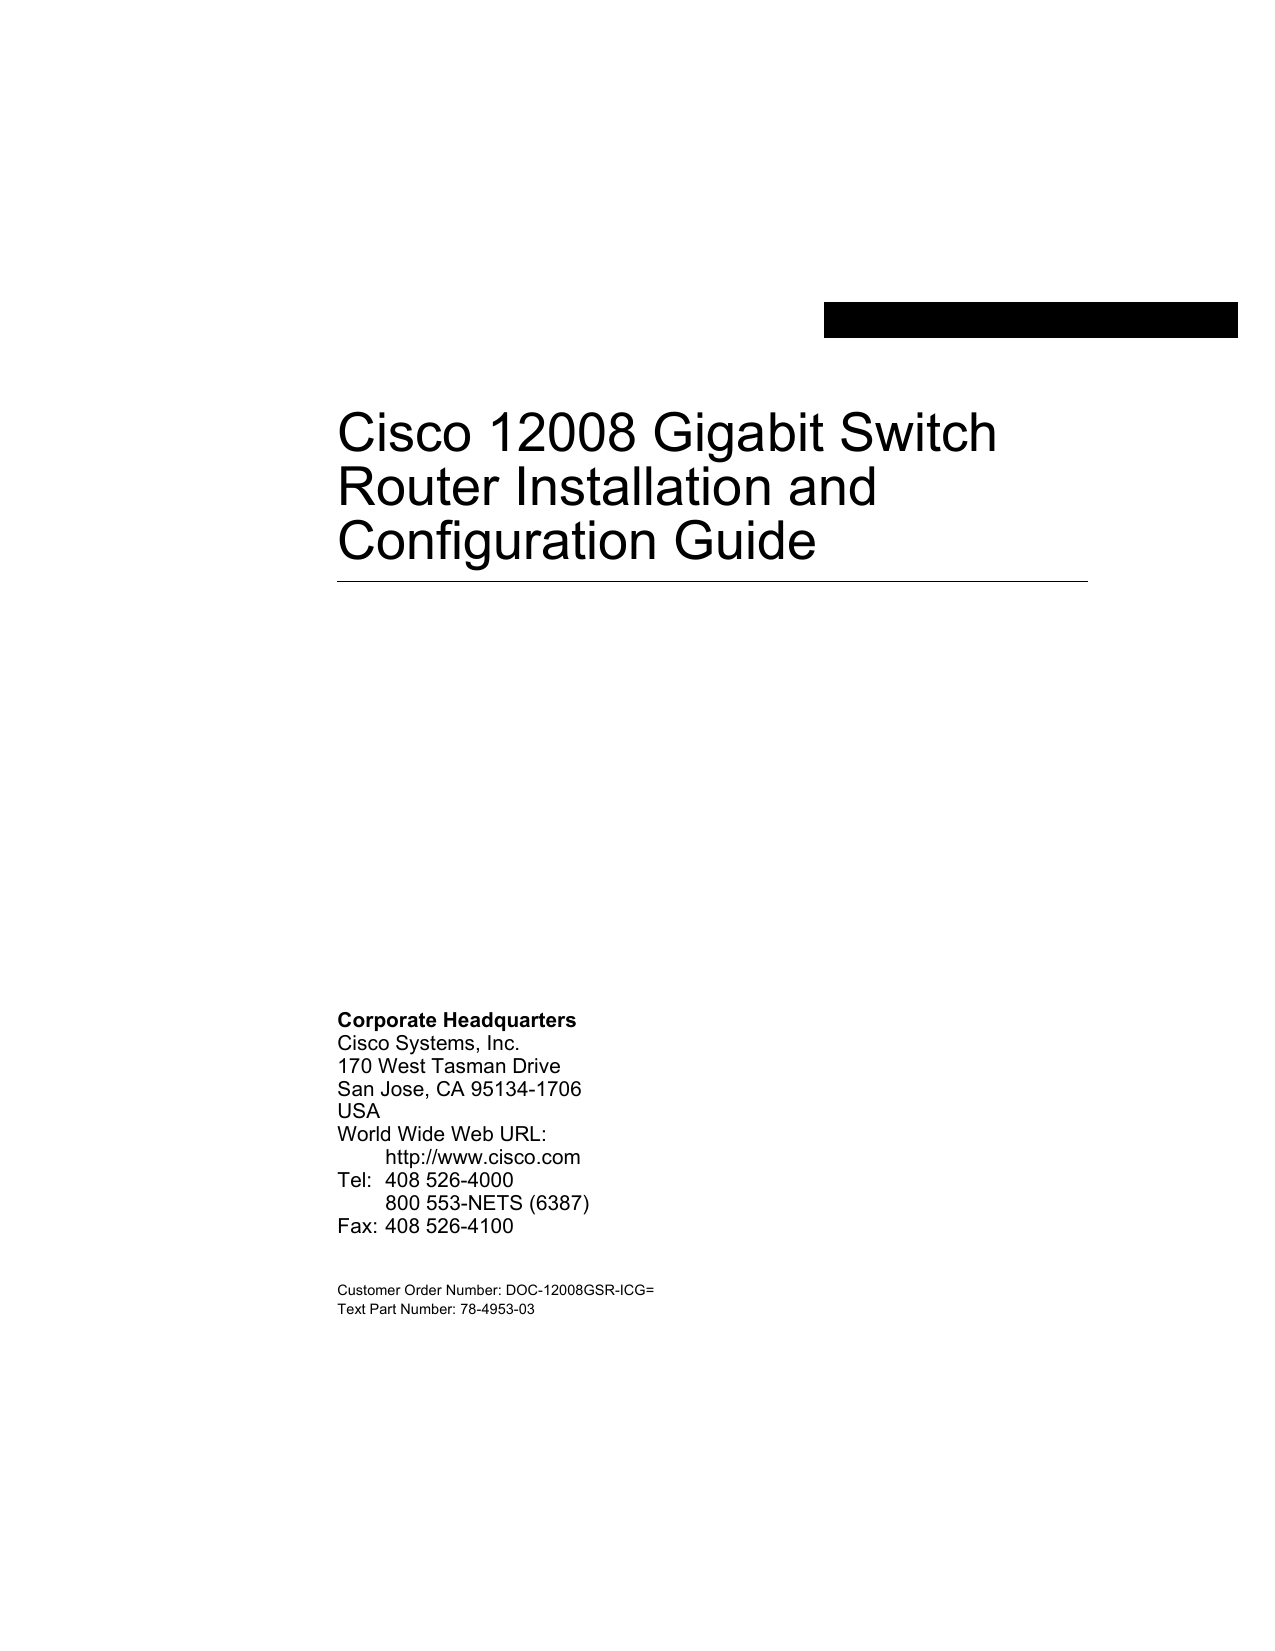 Cisco Gigabit Switch Router Installation And